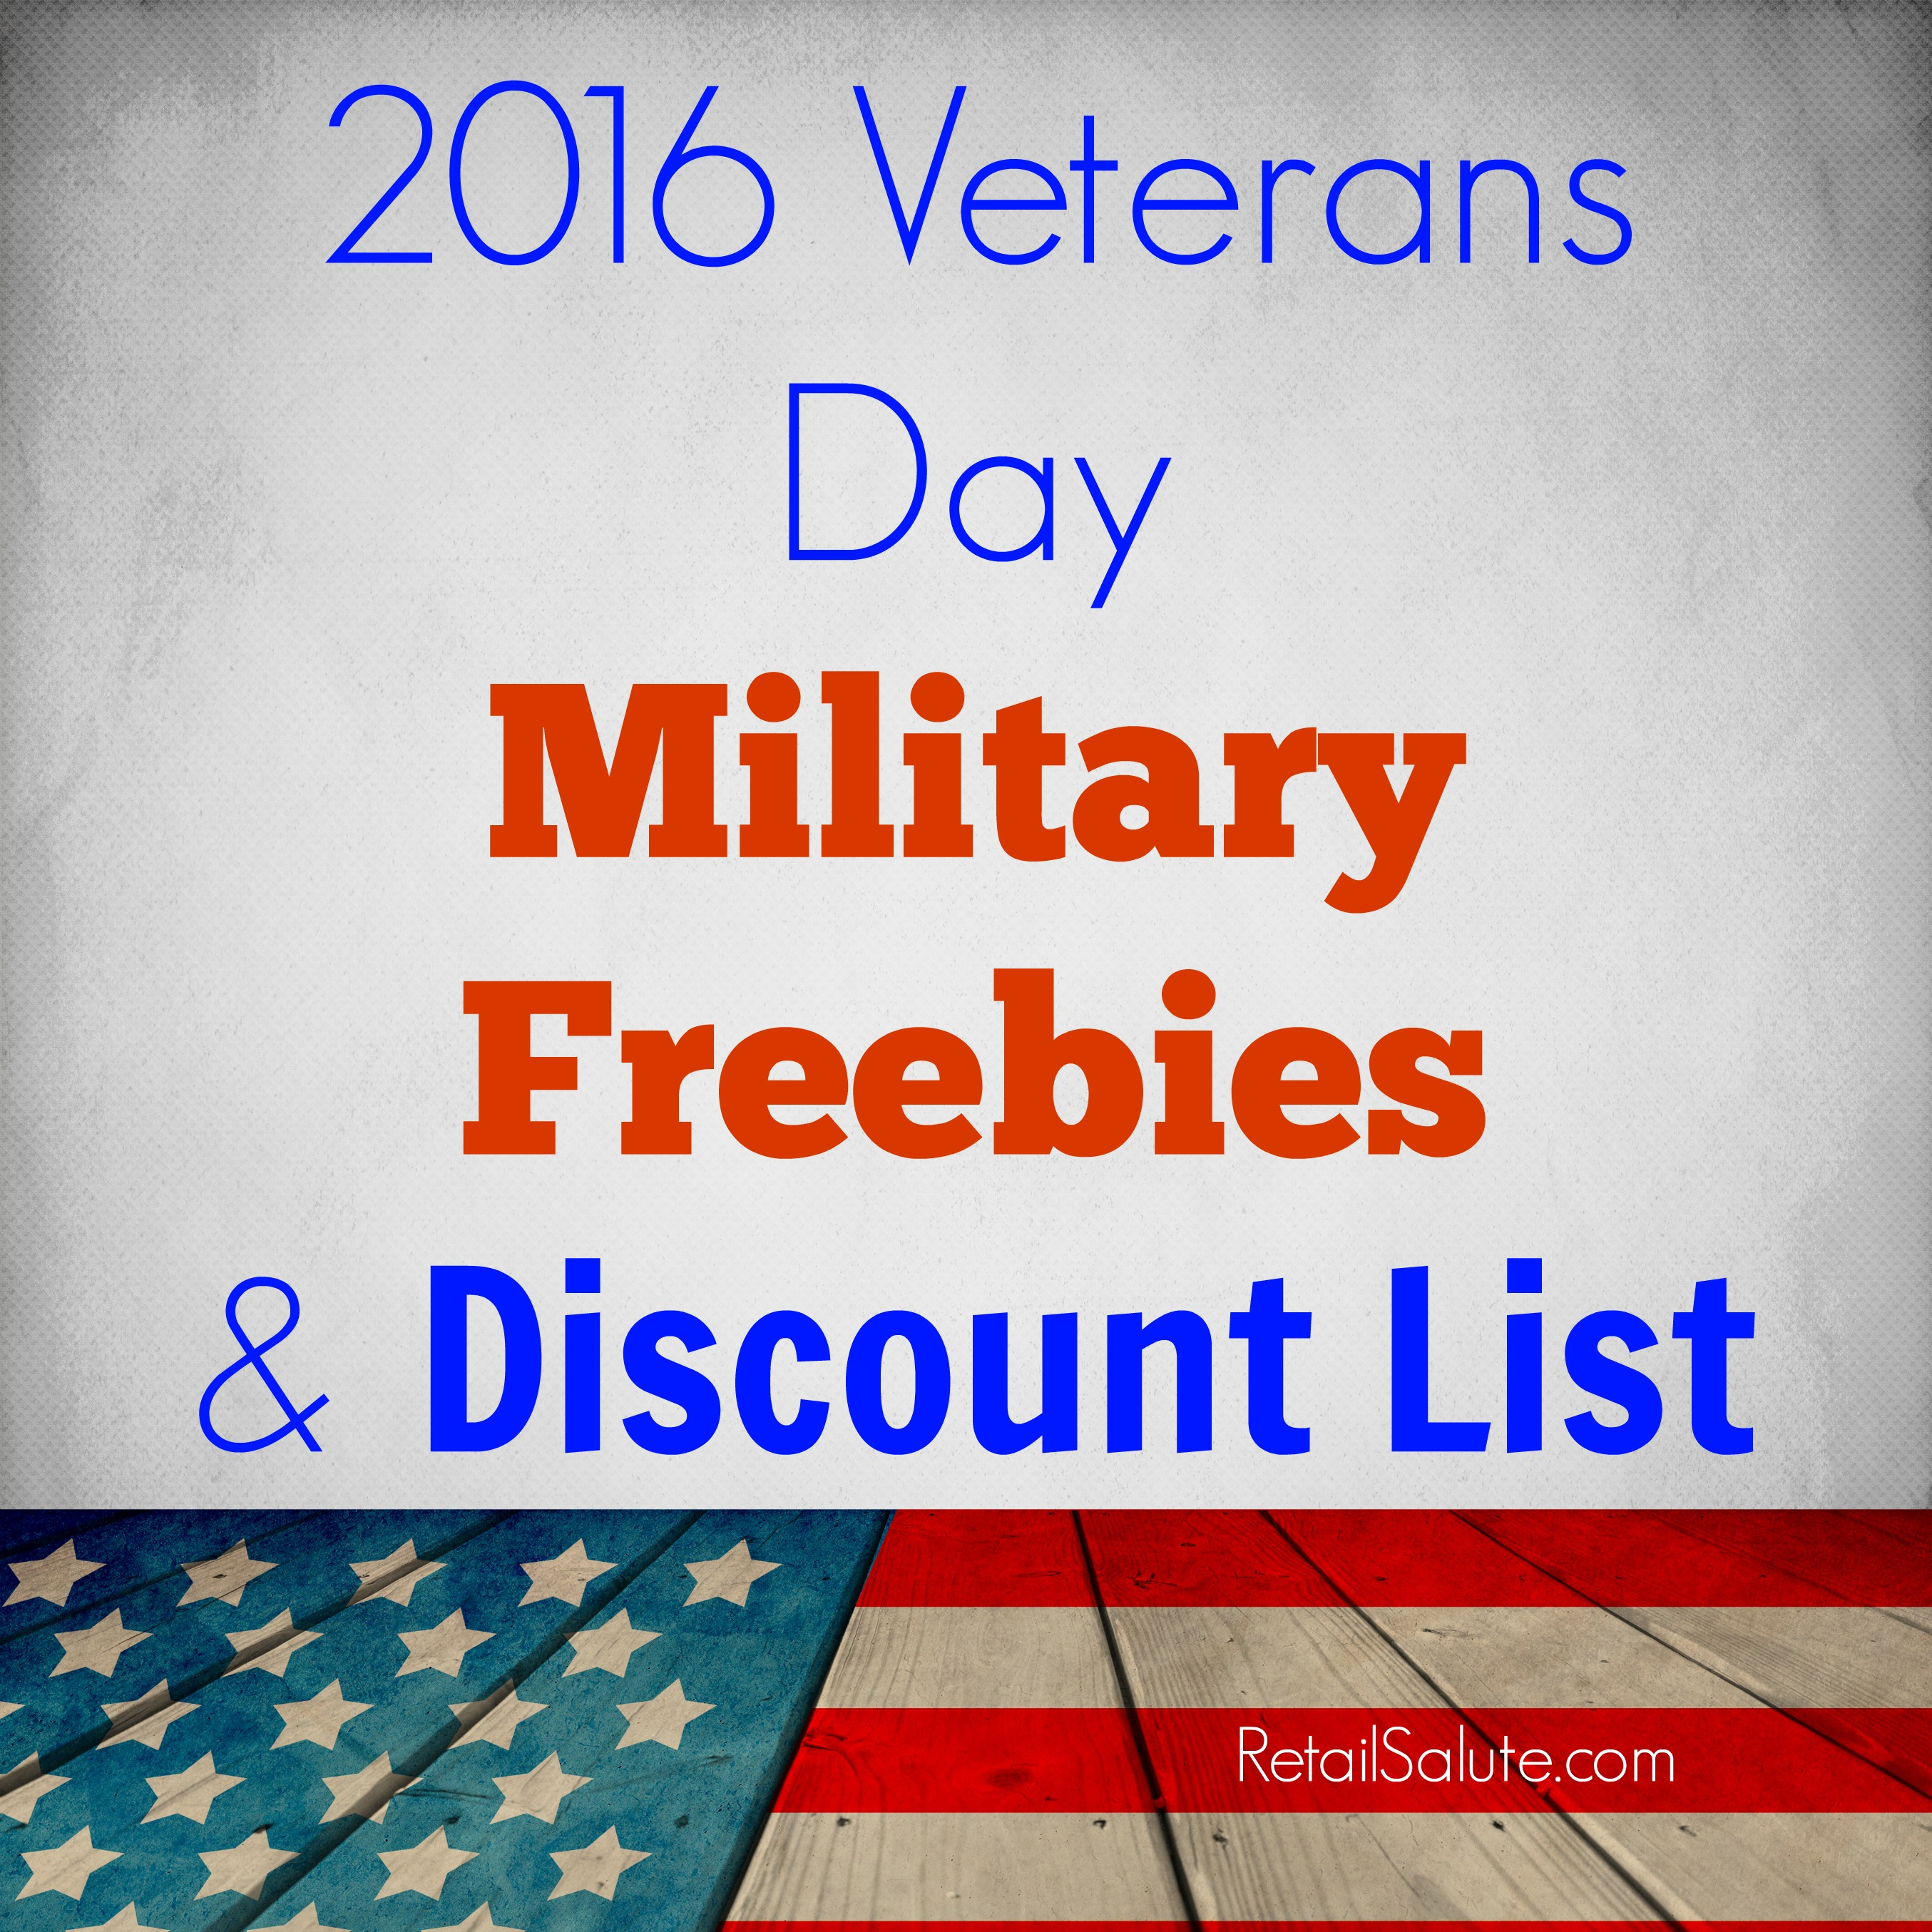 Watch video · There are tons of deals and free offers for veterans and their families this Veterans Day including at parks, restaurants and even hotels.